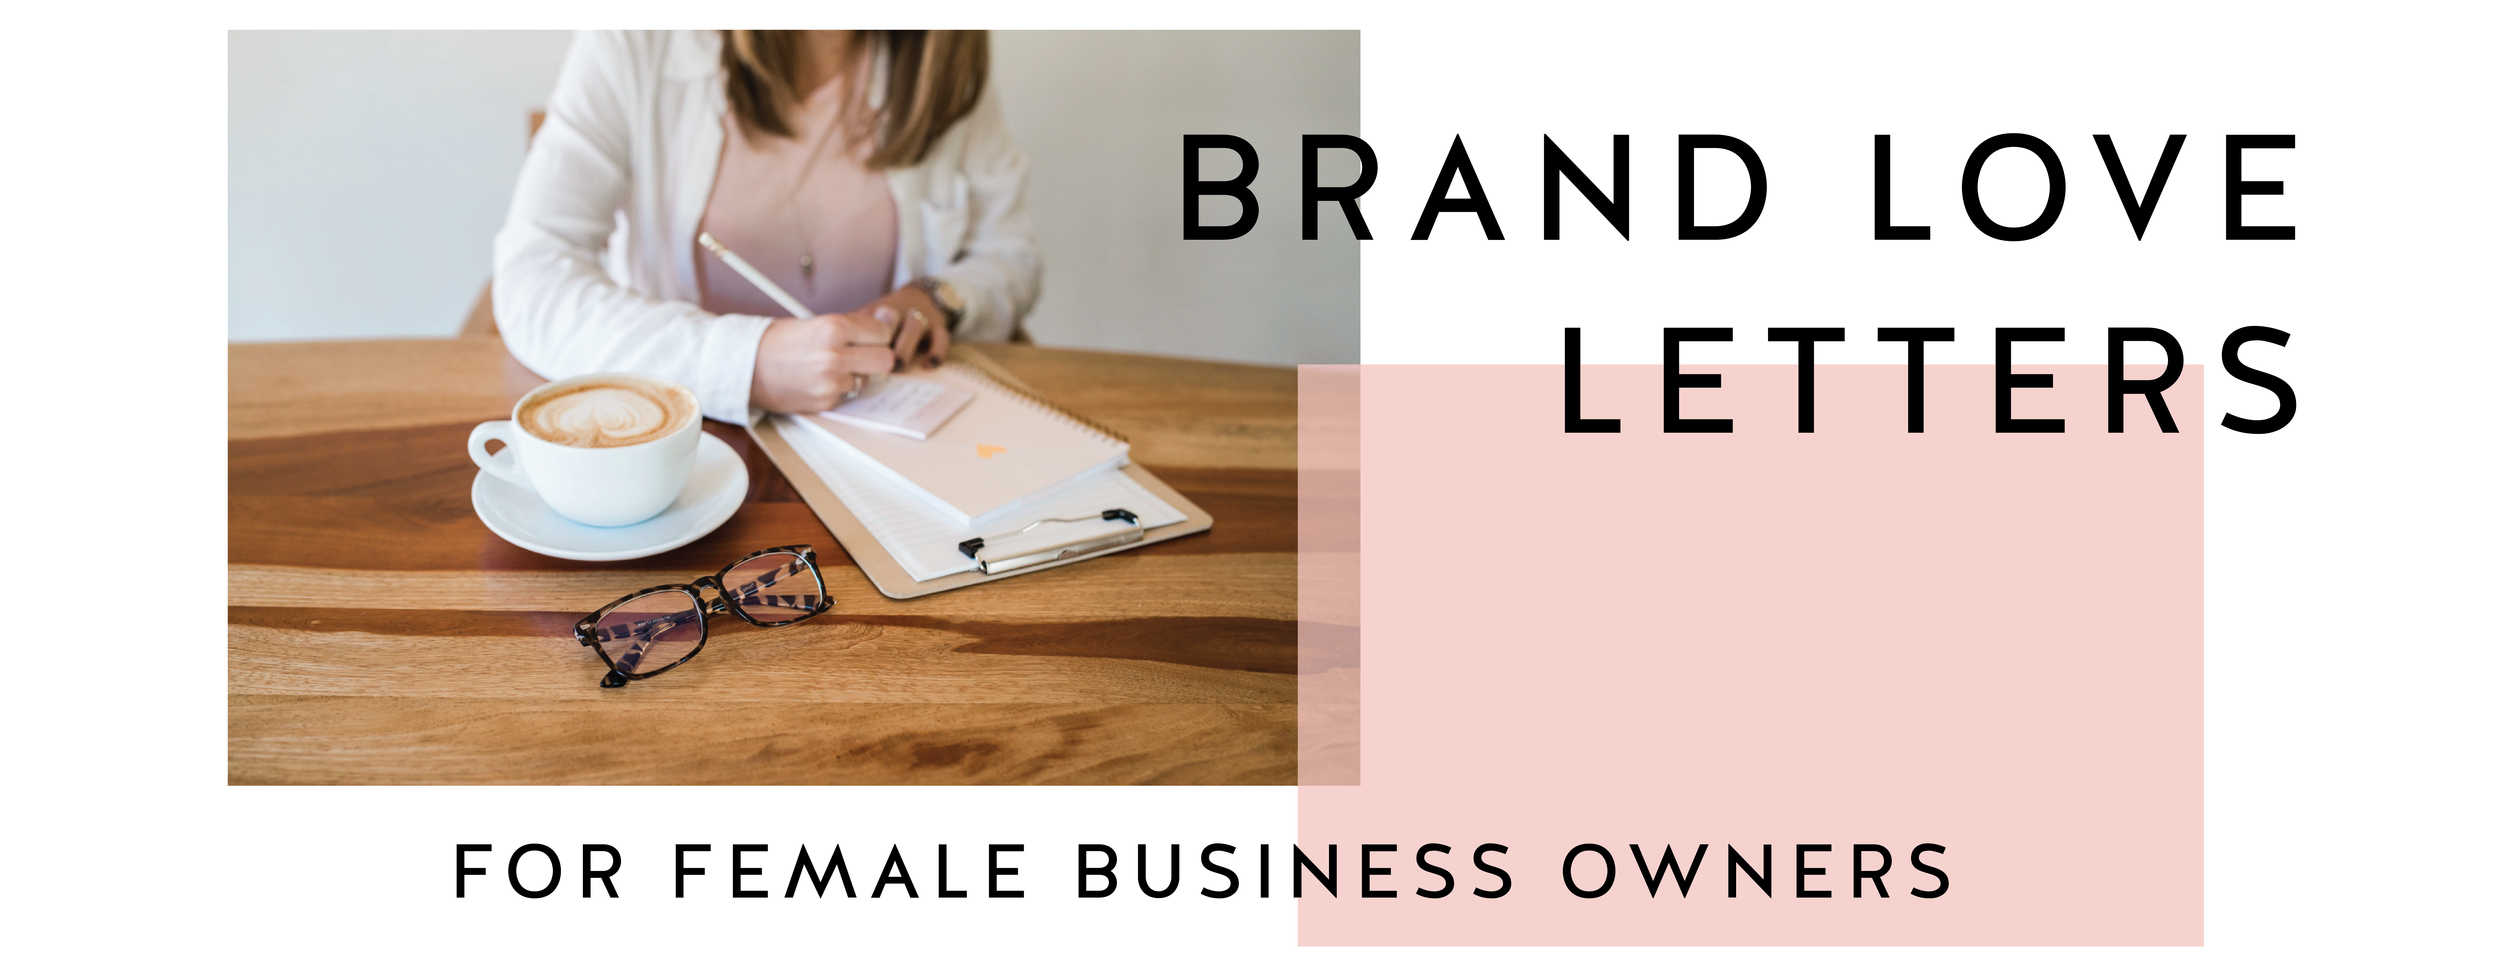 Brand Love Letters for female business owners